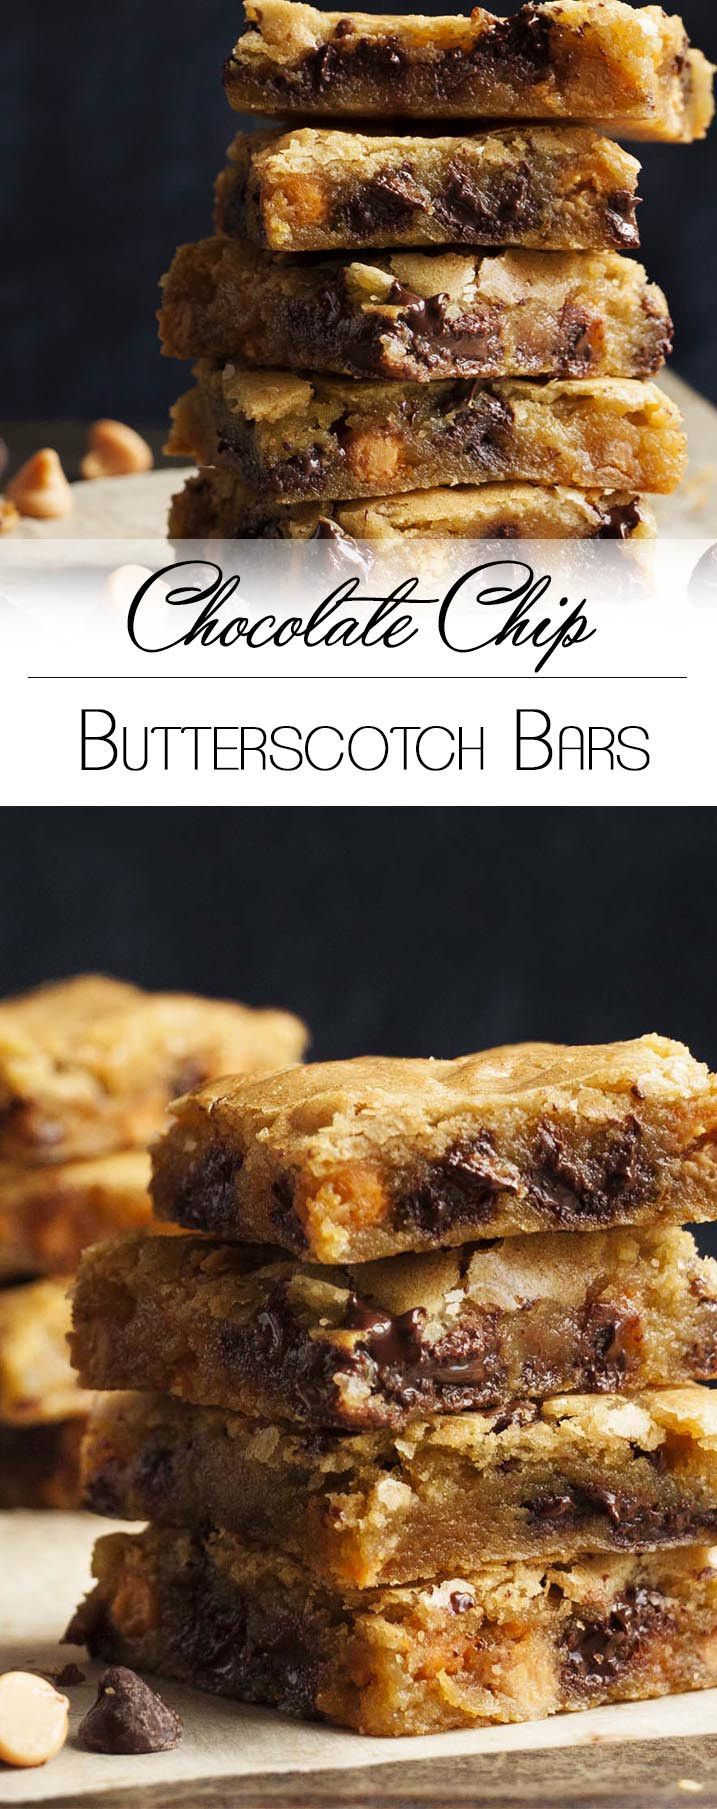 Chocolate Chip Butterscotch Bars - These one bowl bars have all the comfort of an old-fashioned butterscotch bar and the added pleasure of gooey chocolate chips in every bite. | justalittlebitofbacon.com